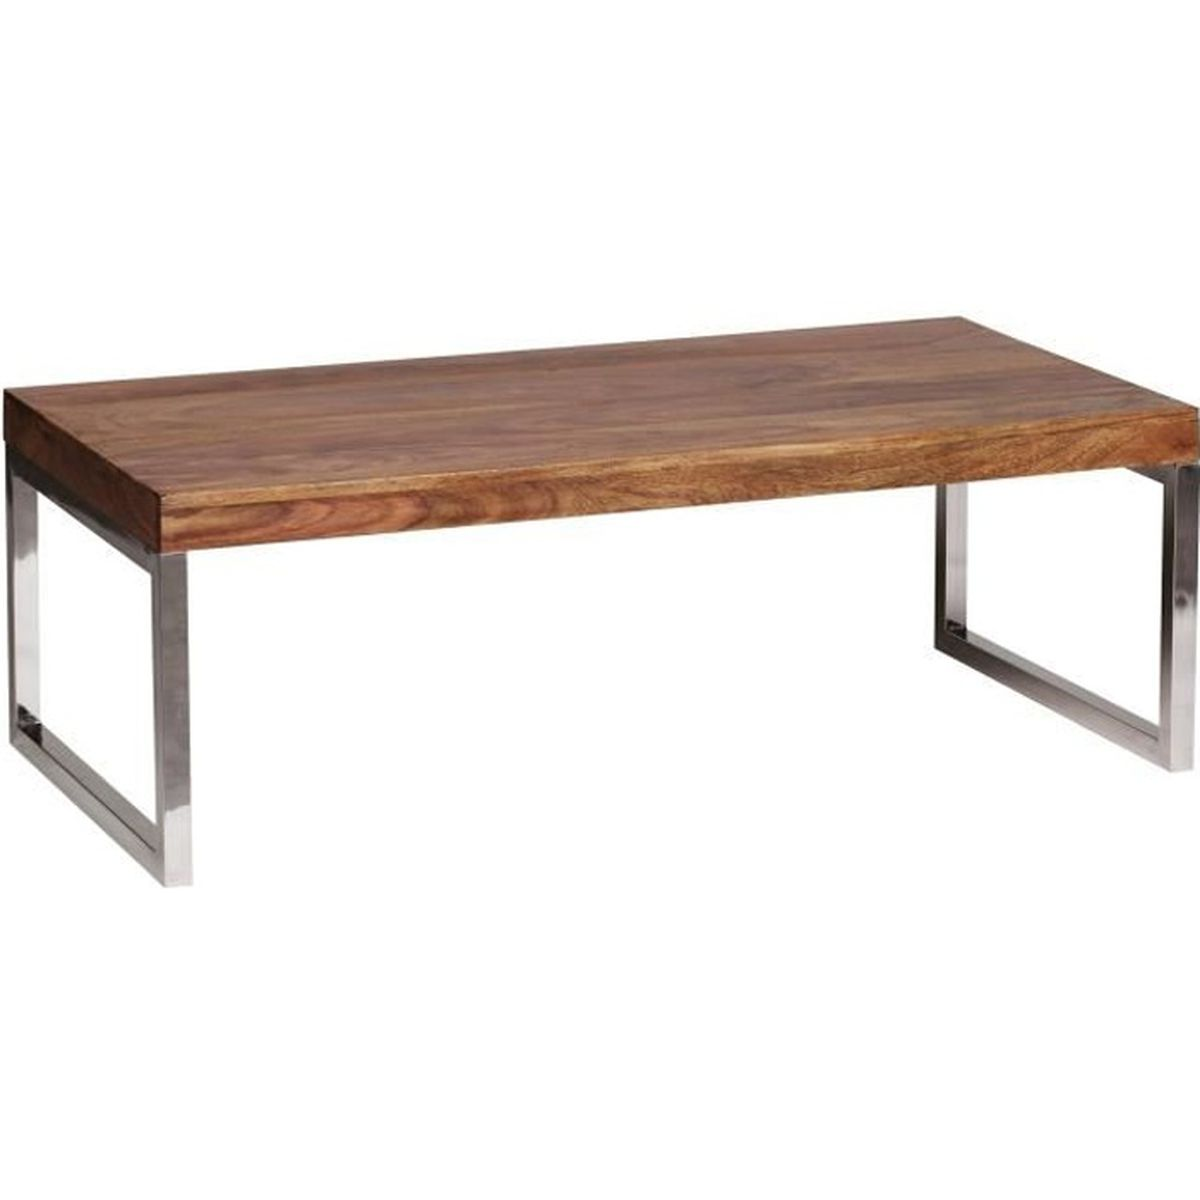 WOHNLING table basse en bois massif Sheesham 7cm de large salon